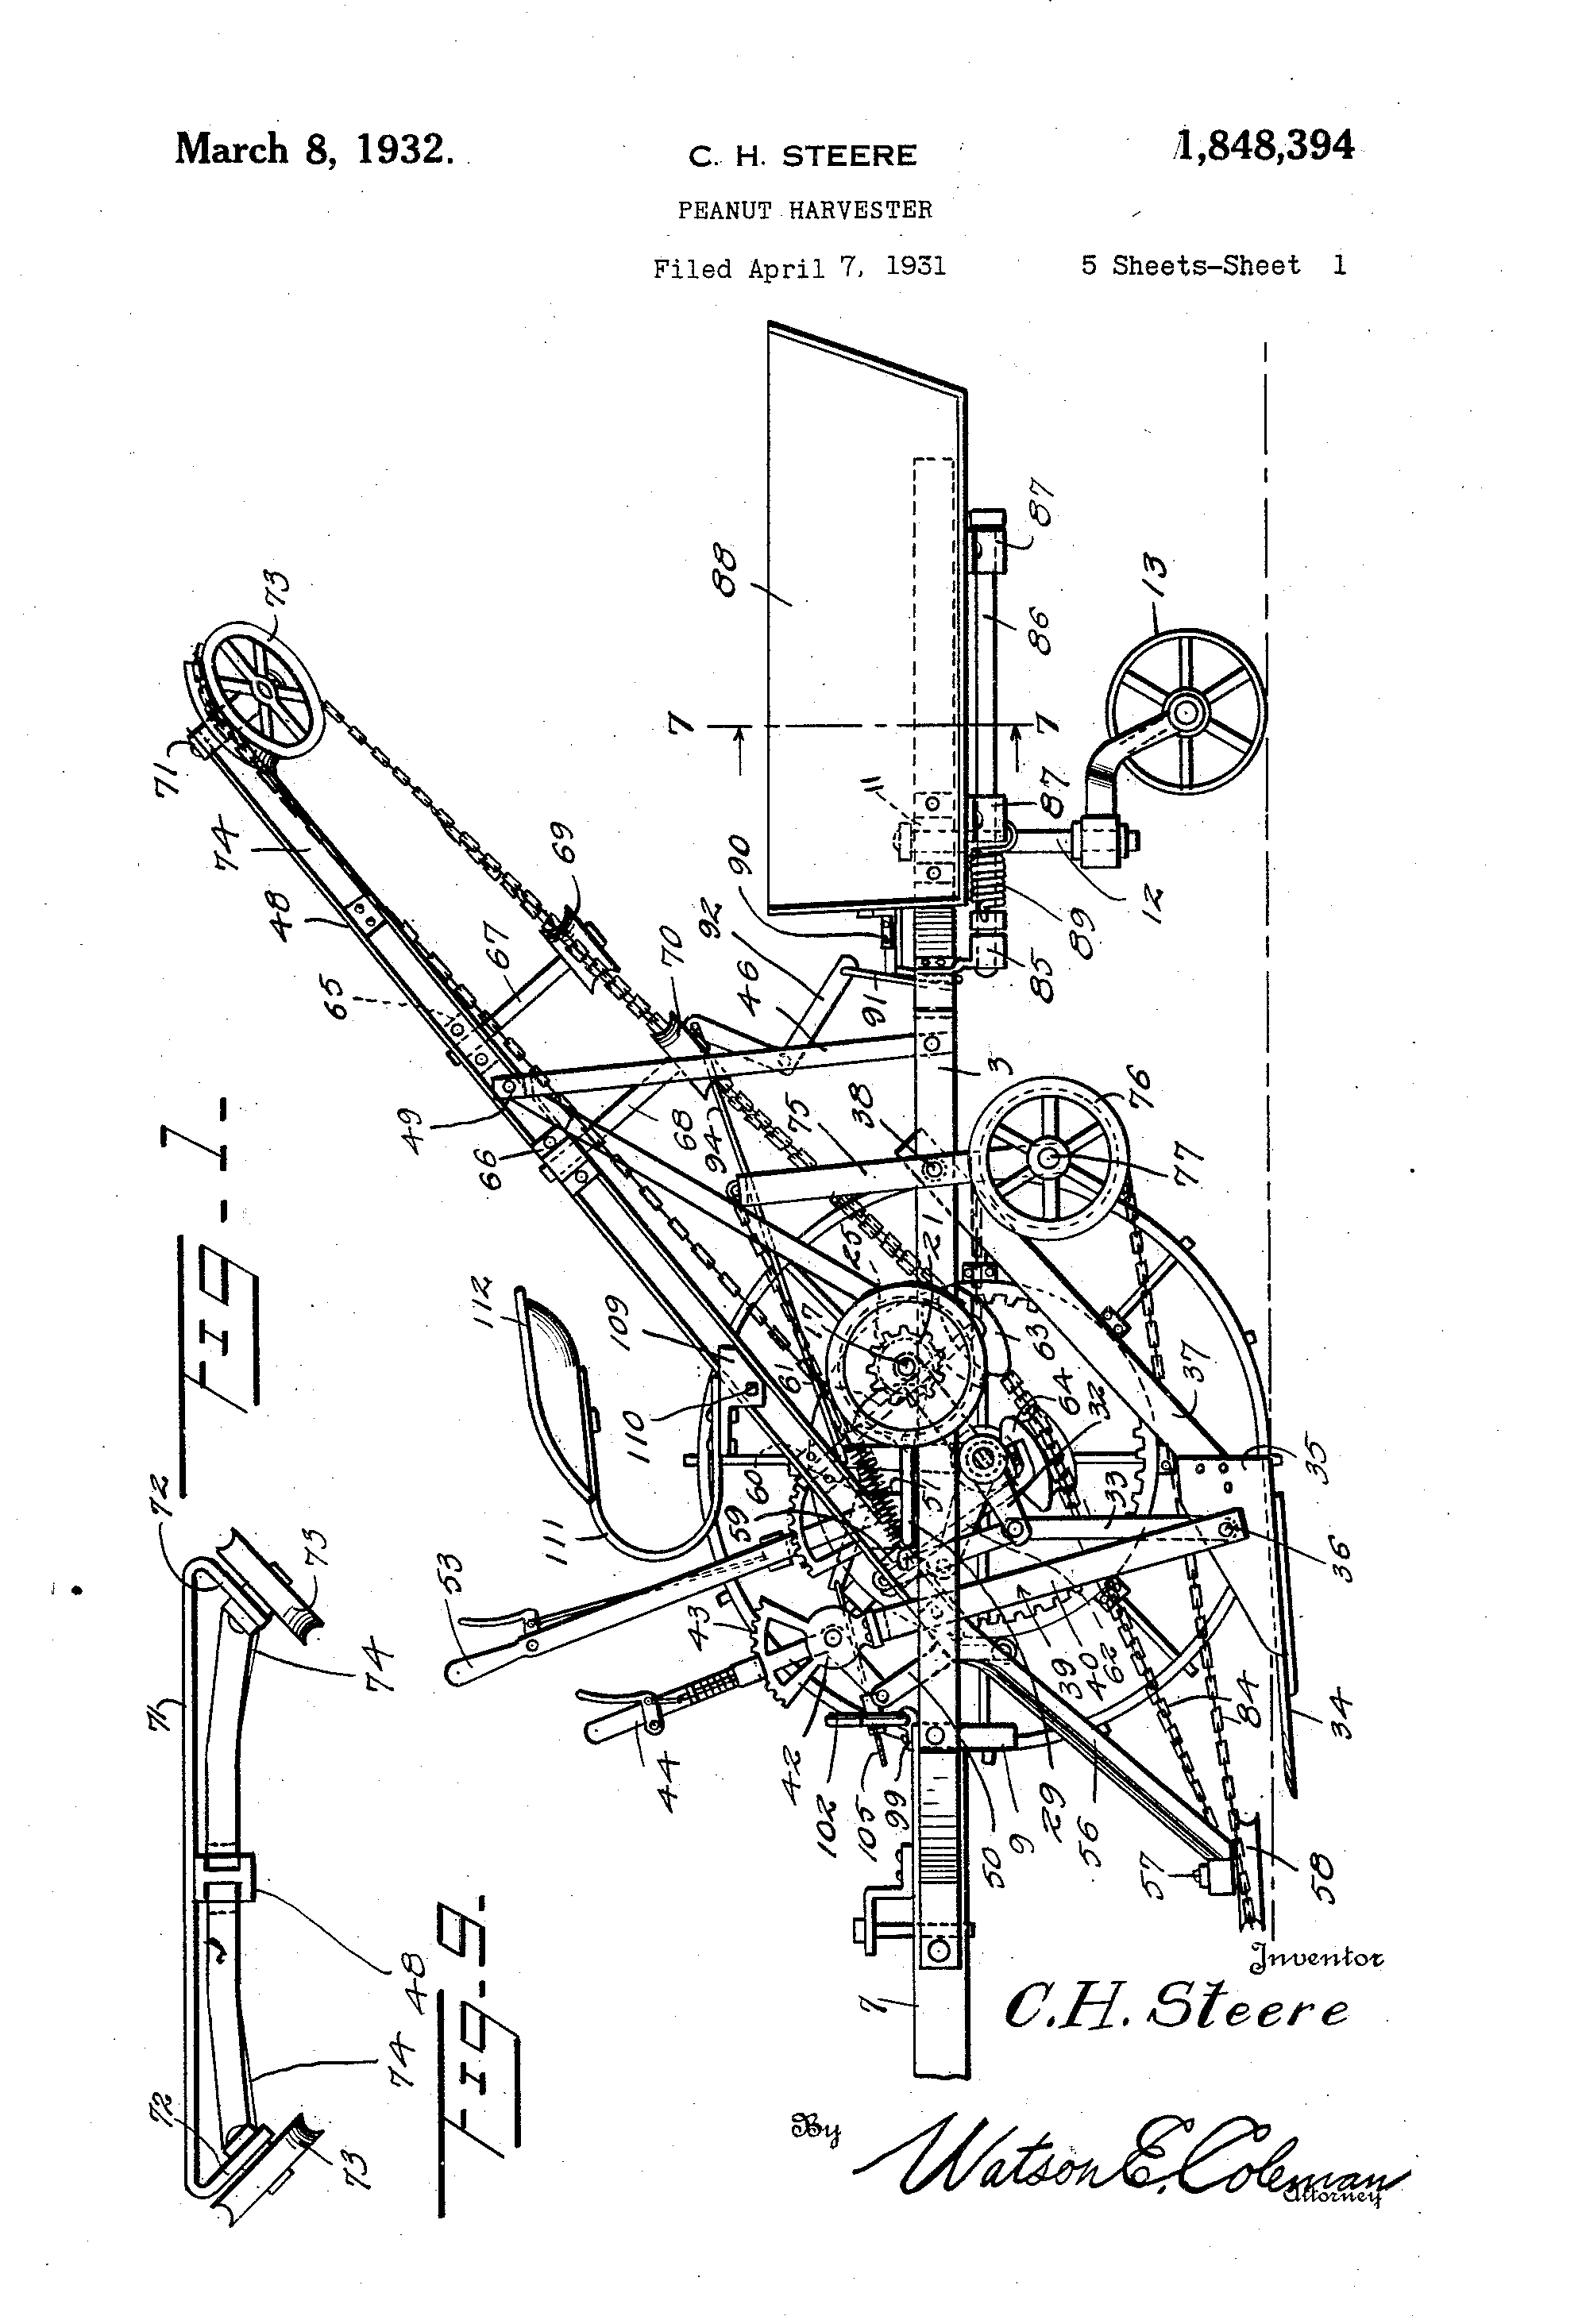 The 1934 peanut harvester patented by Charles Steere.